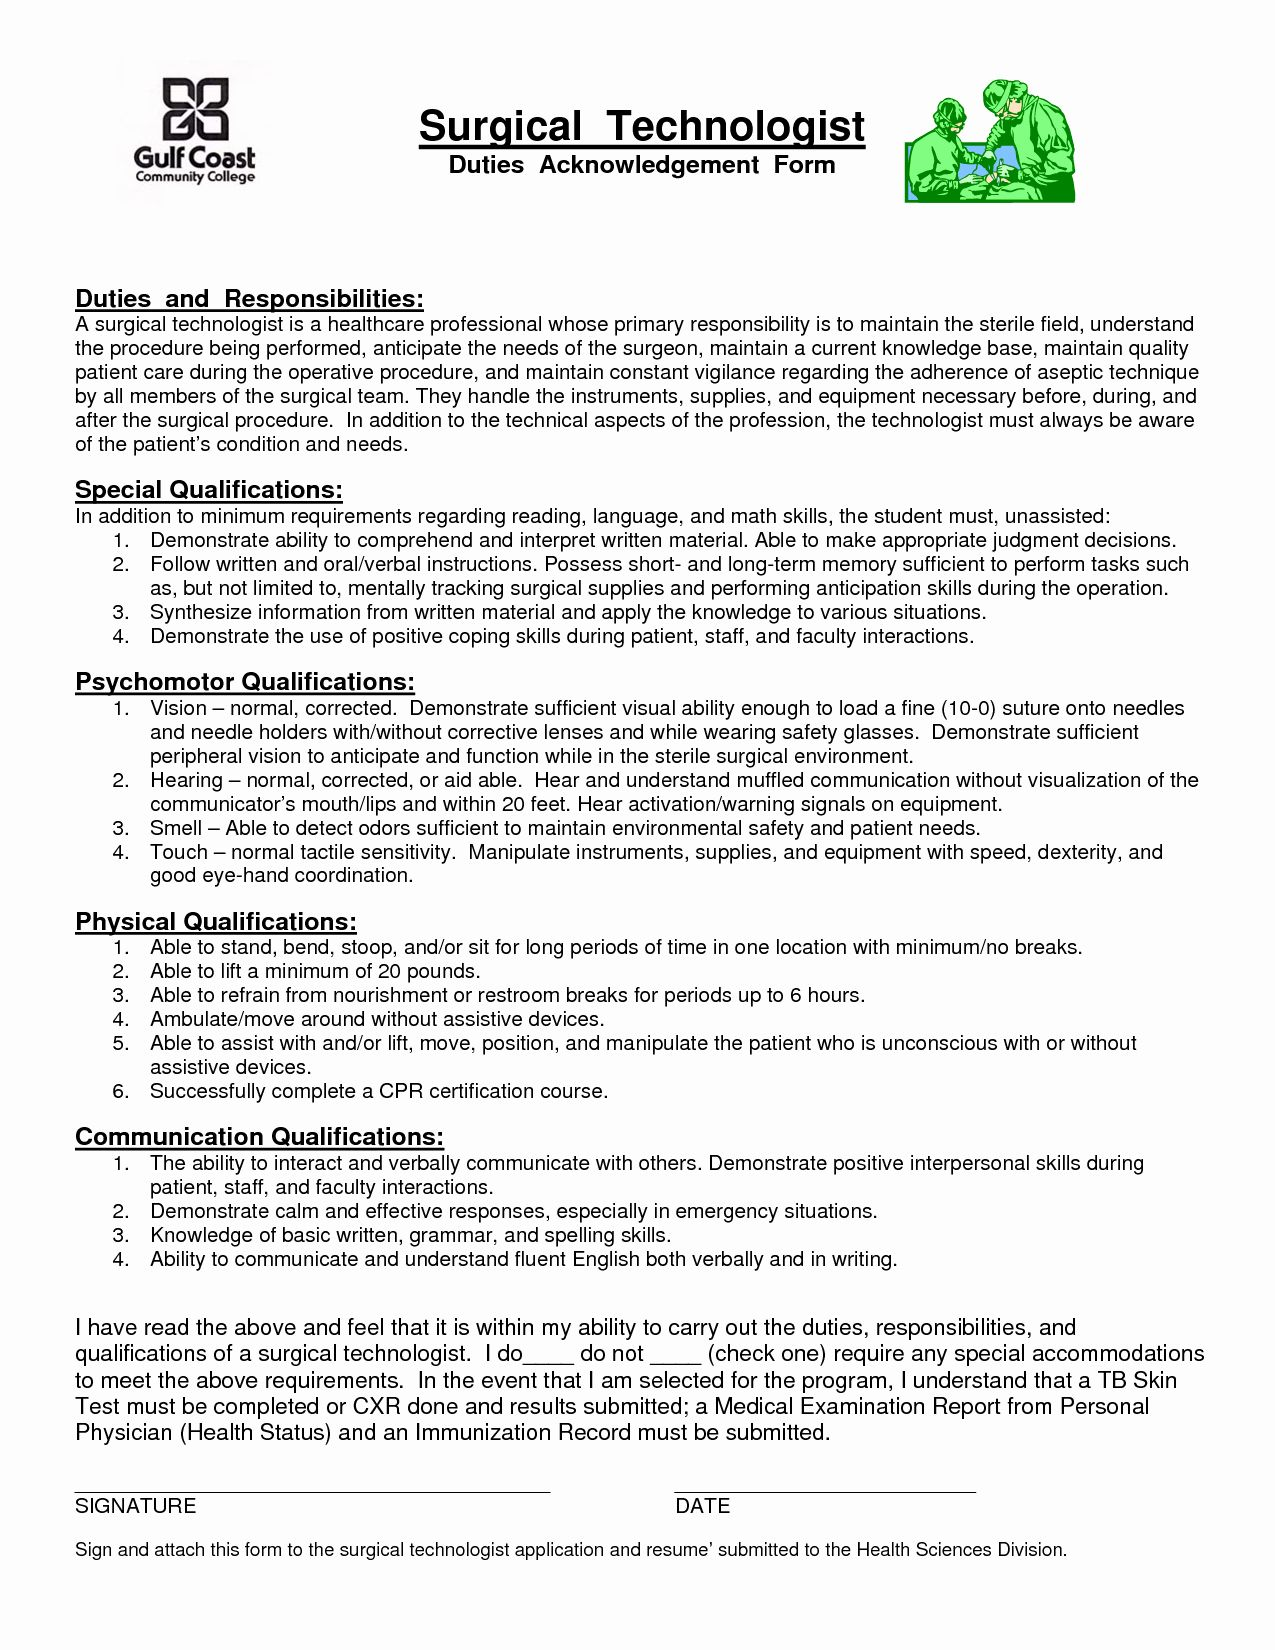 23 Surgical Tech Resume Examples in 2020 Resume examples